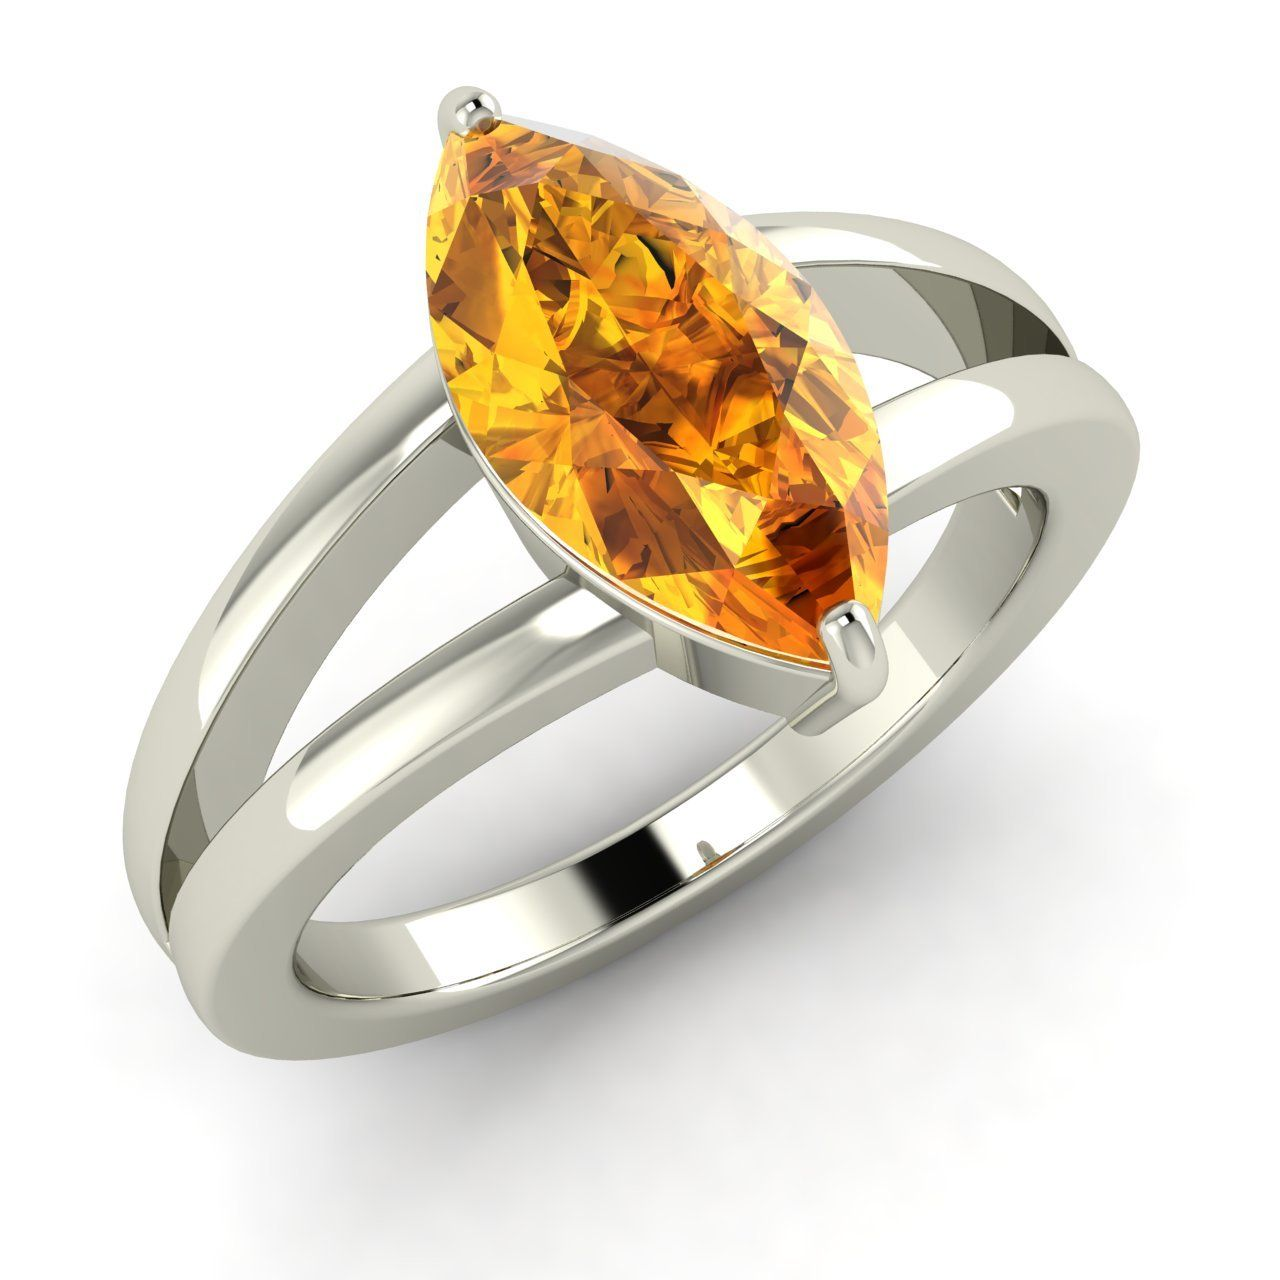 1.4 Ct Marquise Cut Natural Citrine Solitaire Ring in Solid Sterling Silver - Genuine Gemstone